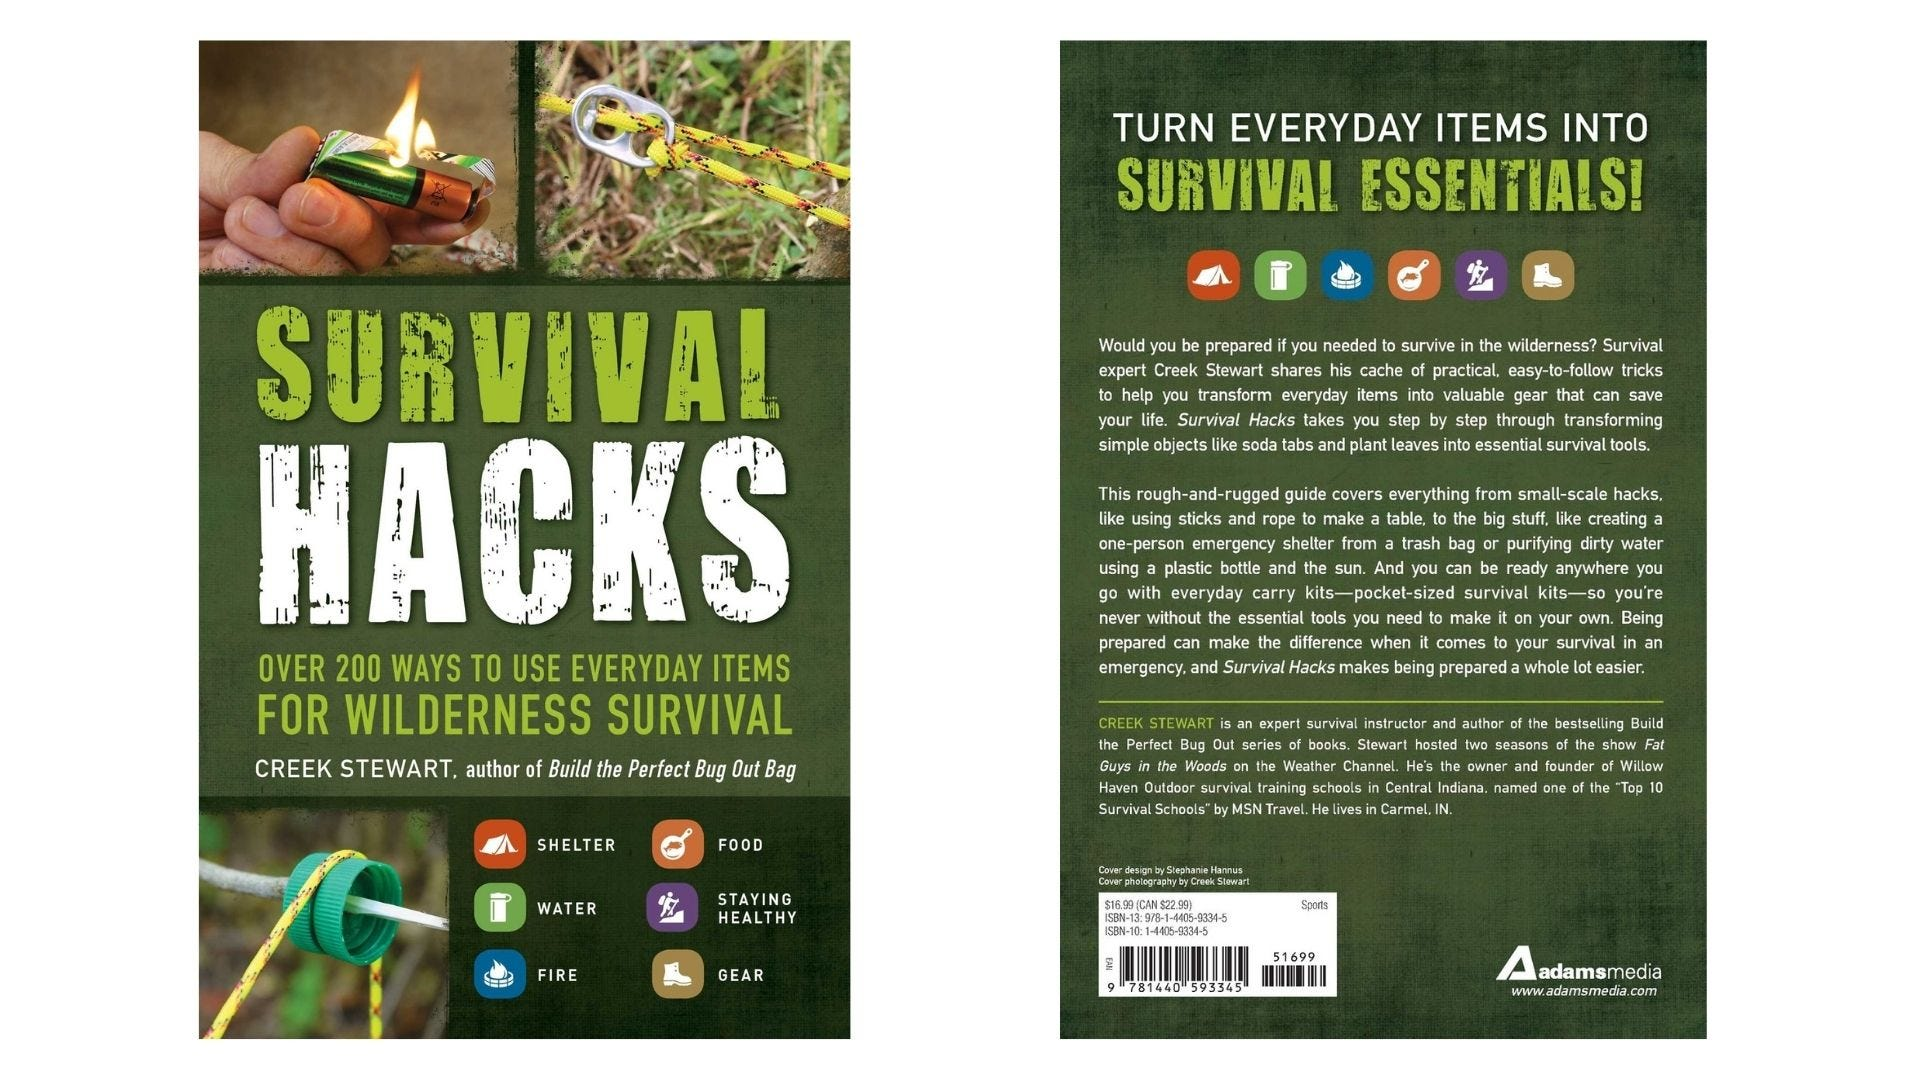 The front and back covers of a survival hacks book